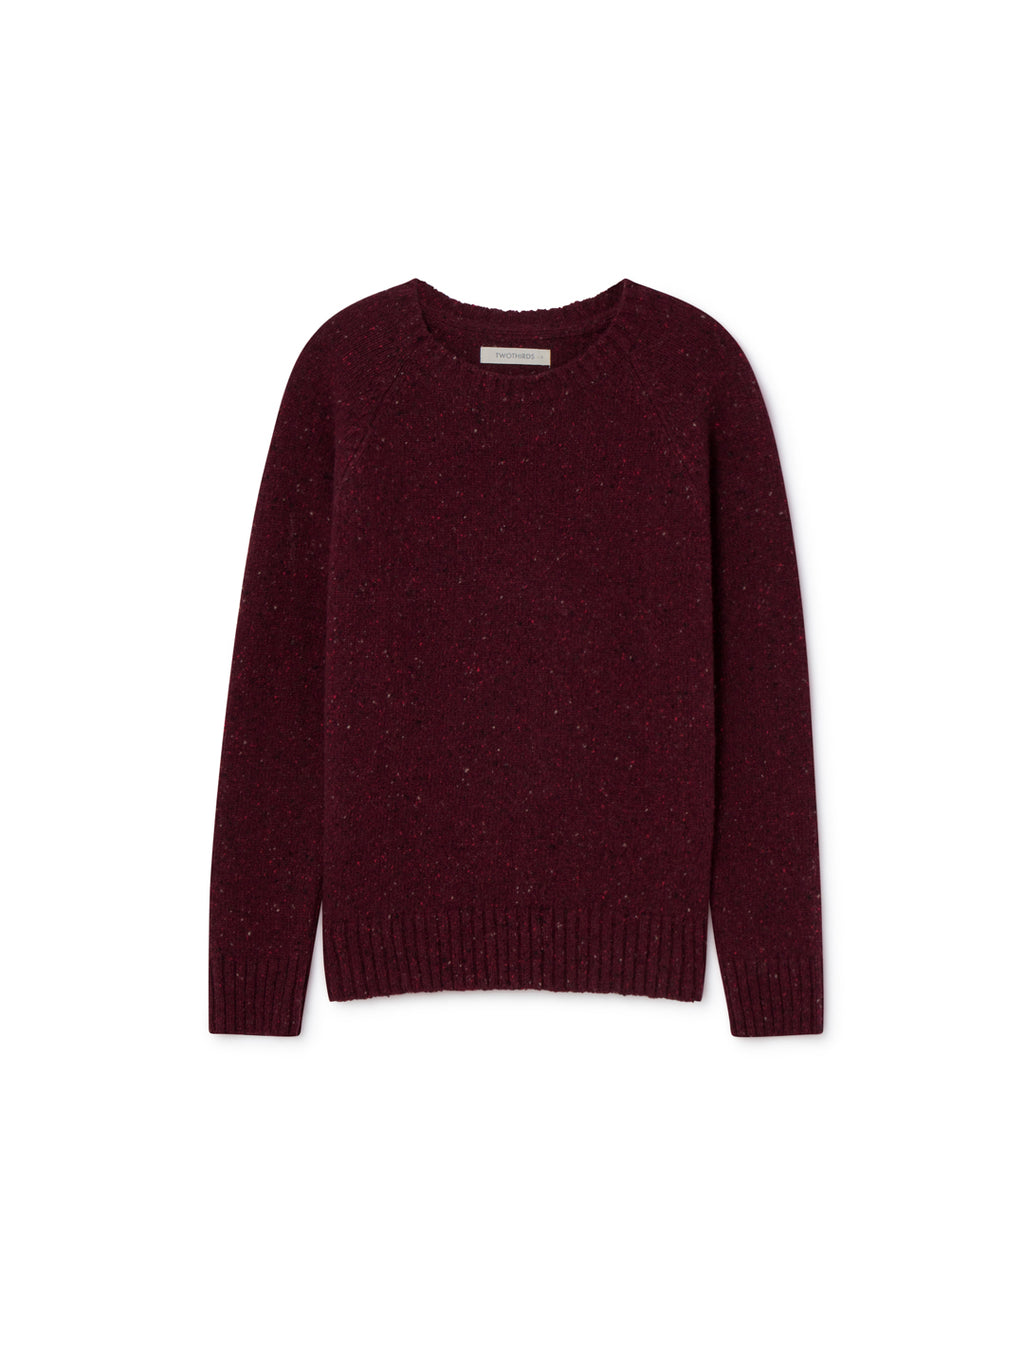 TWOTHIRDS Womens Knit: Agpat - Burgundy front